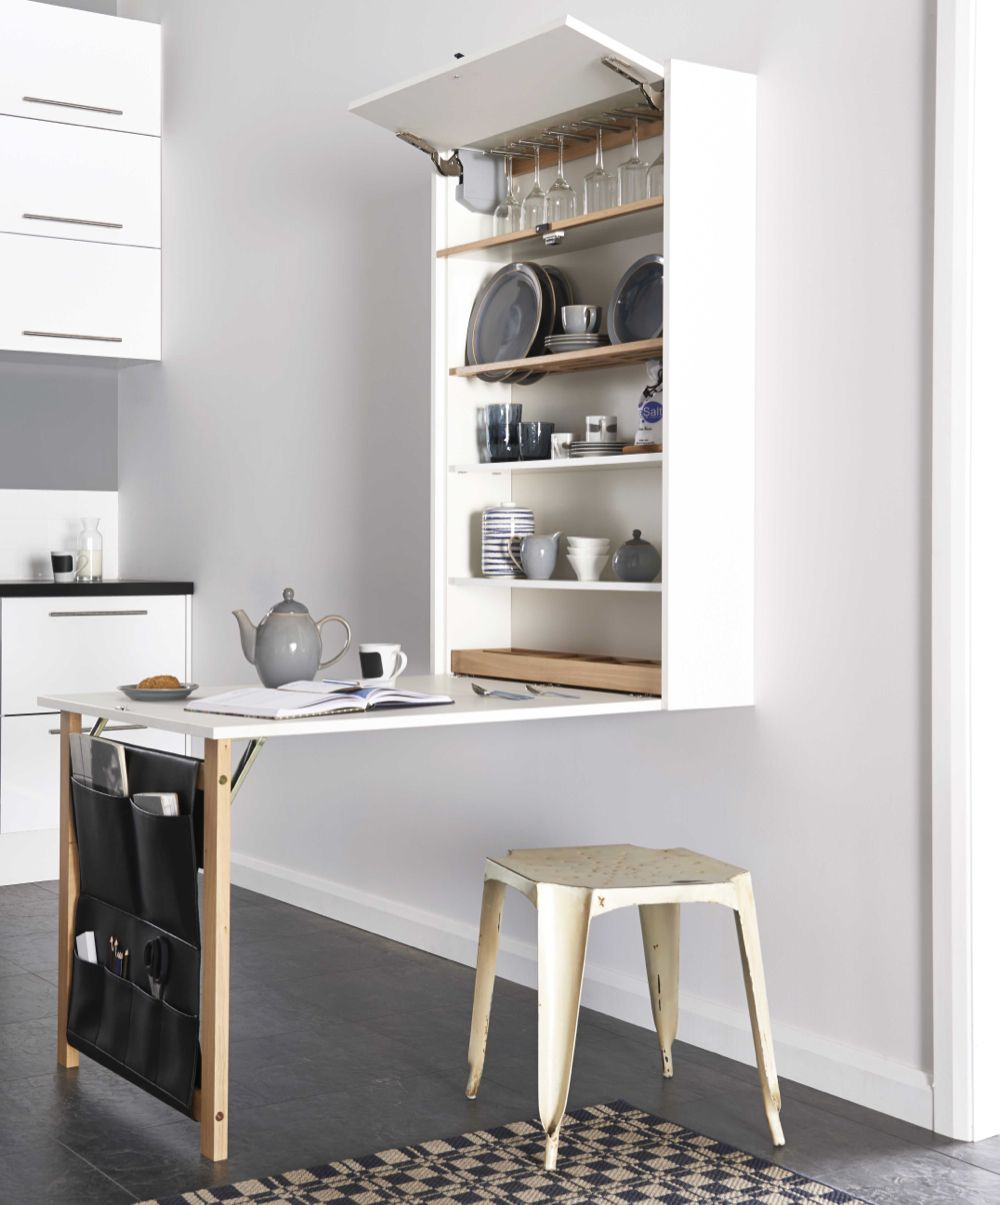 Worksurfaces are often limited in smaller kitchens. The Table Plus ...